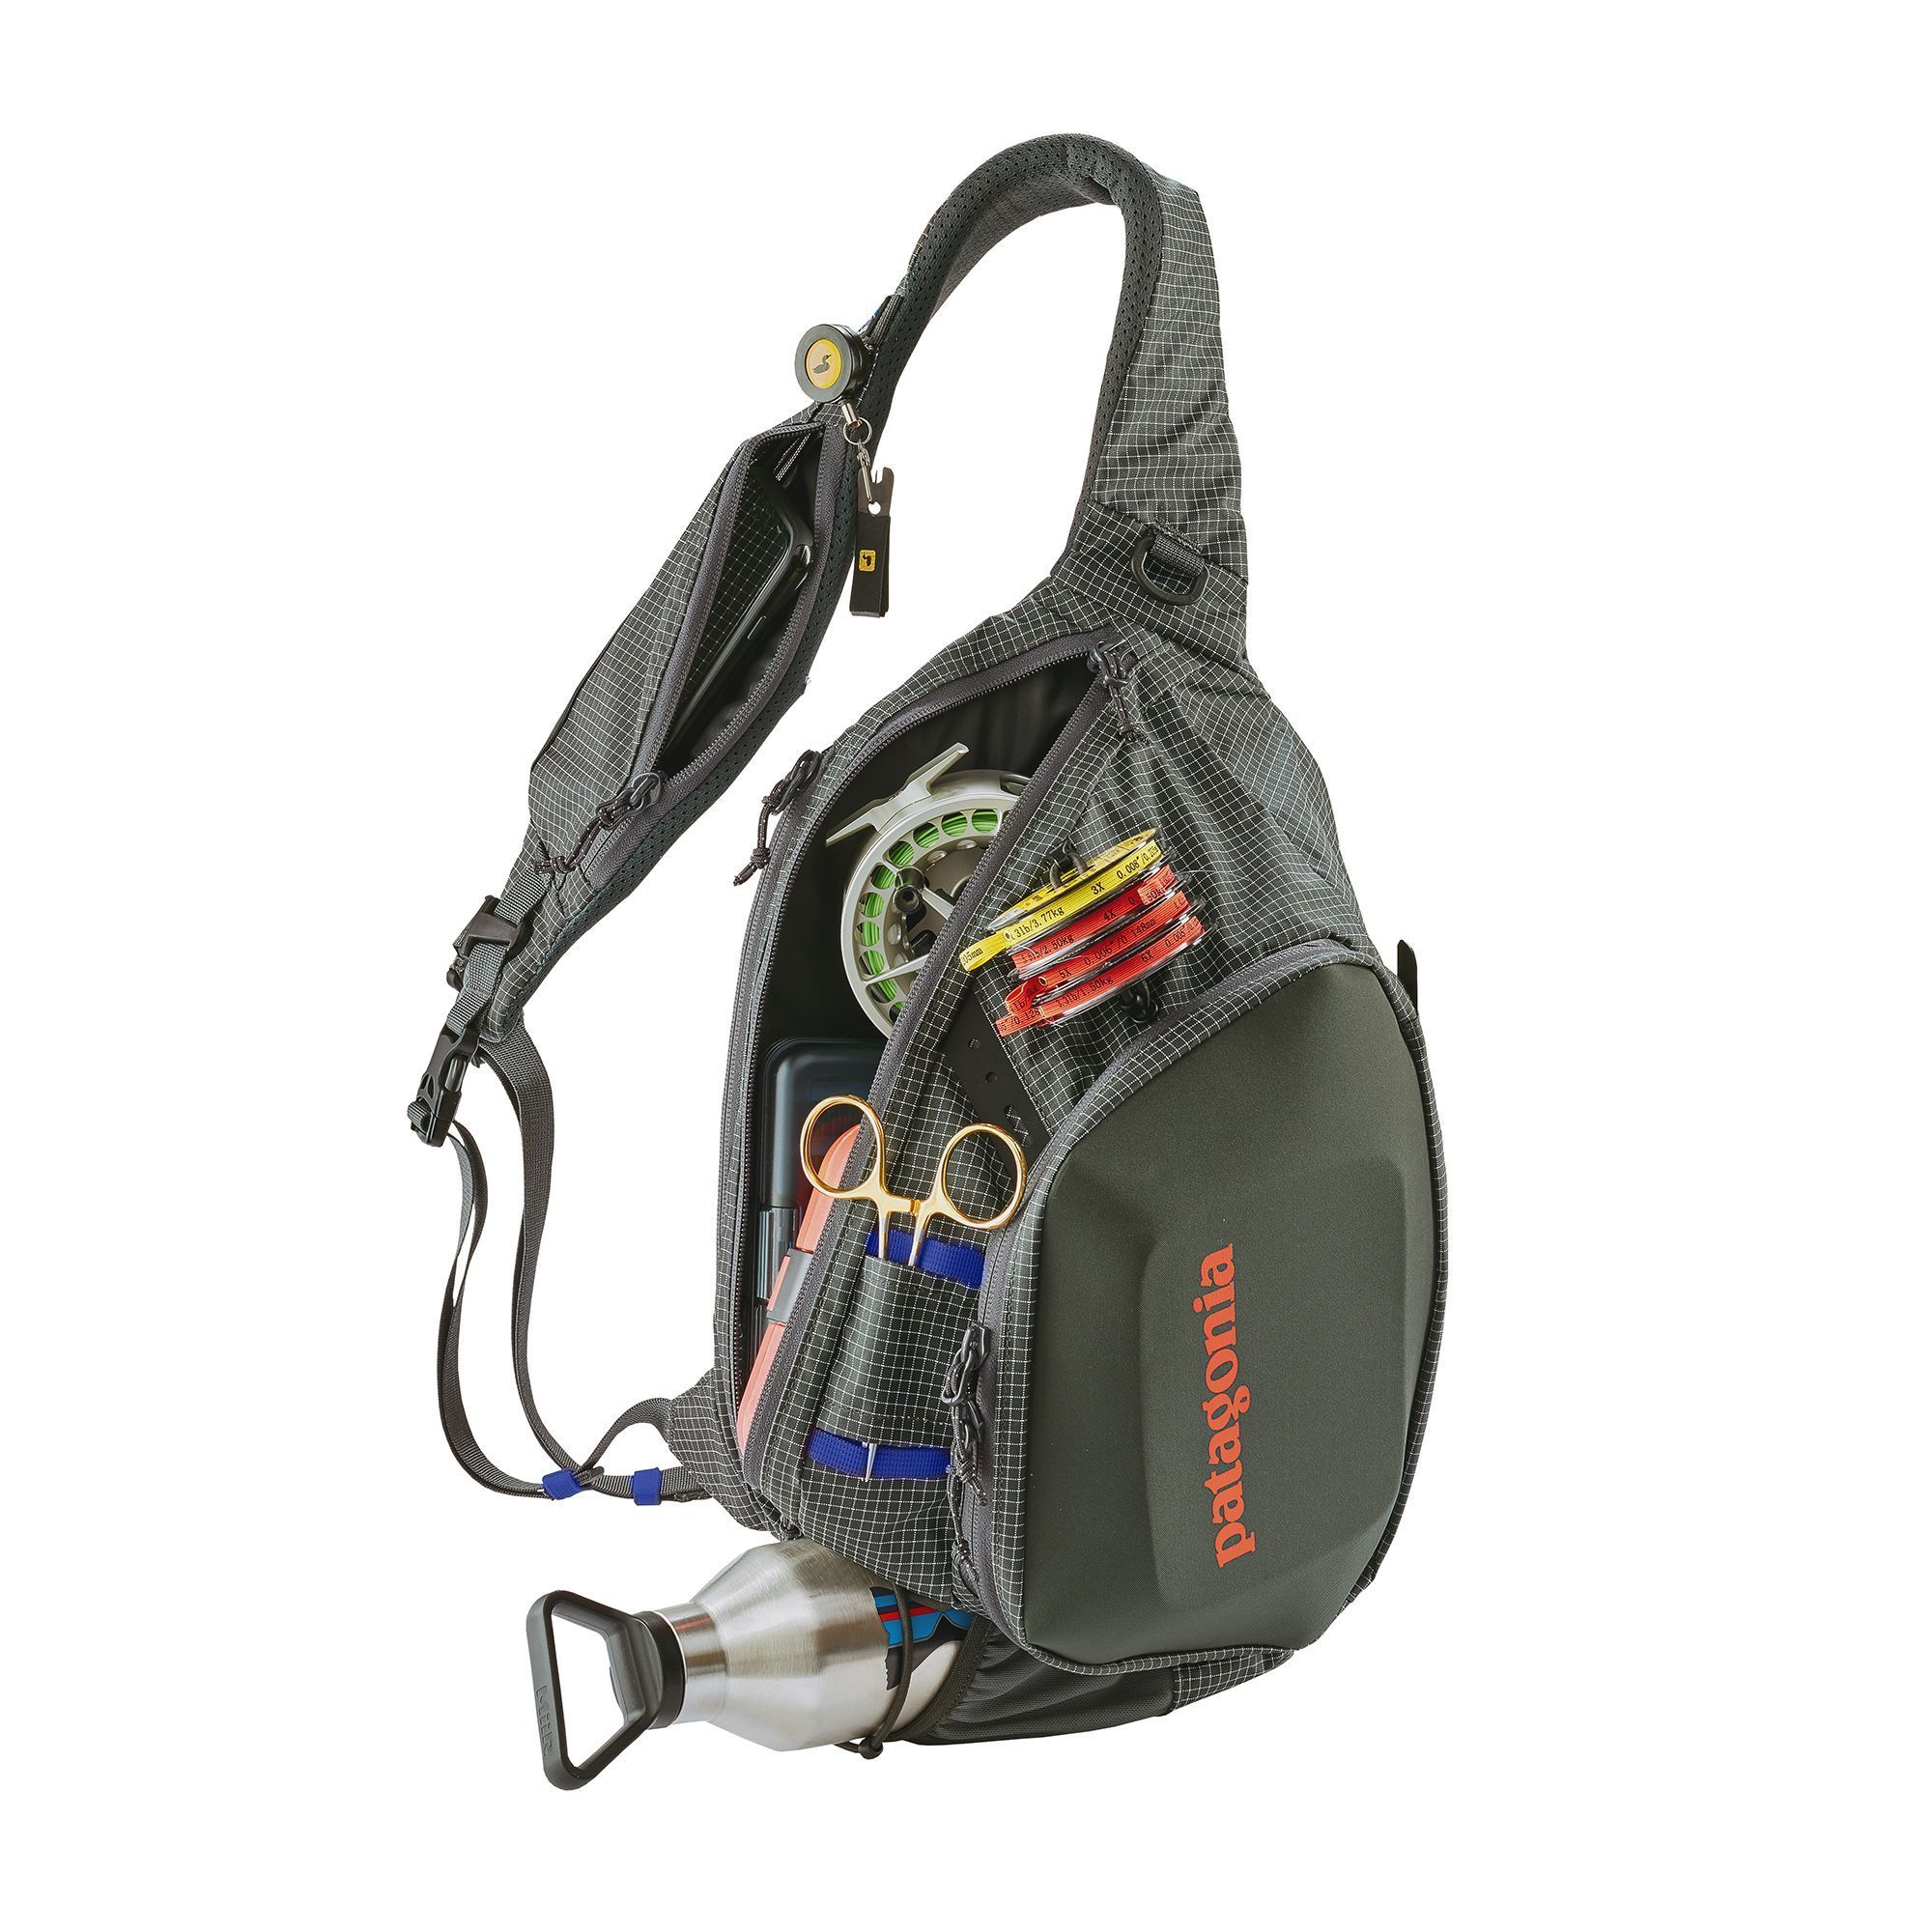 Patagonia Stealth Atom Sling Forge Grey In 2021 Fishing Boots Sling Pack Fly Fishing Gear